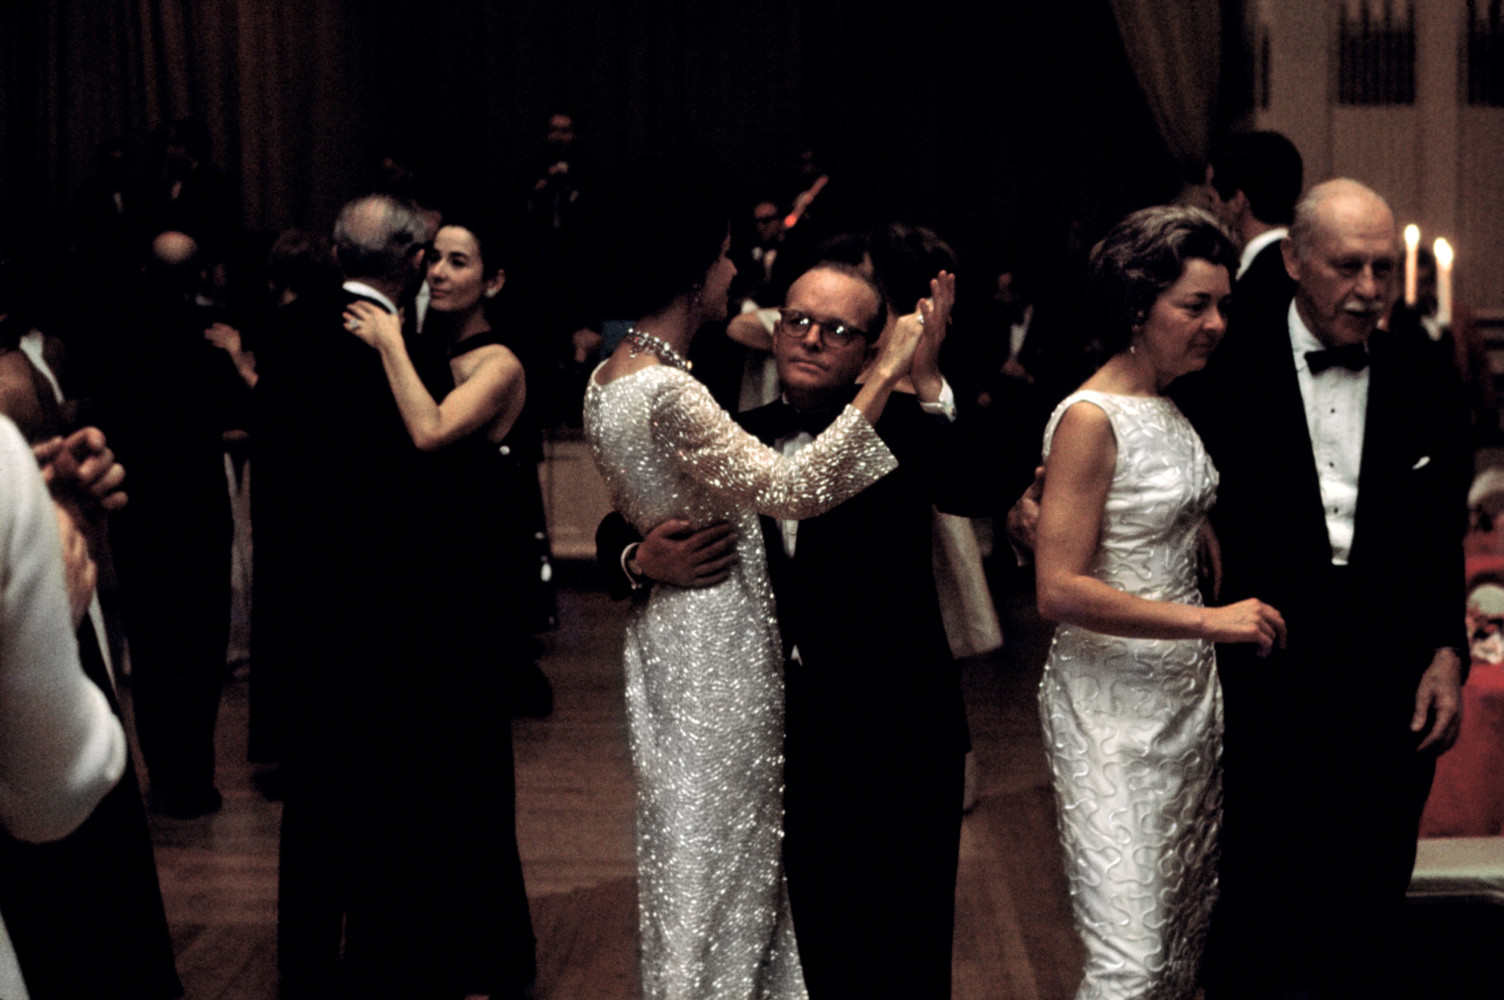 Inside Truman Capote's Black and White Ball • Magnum Photos